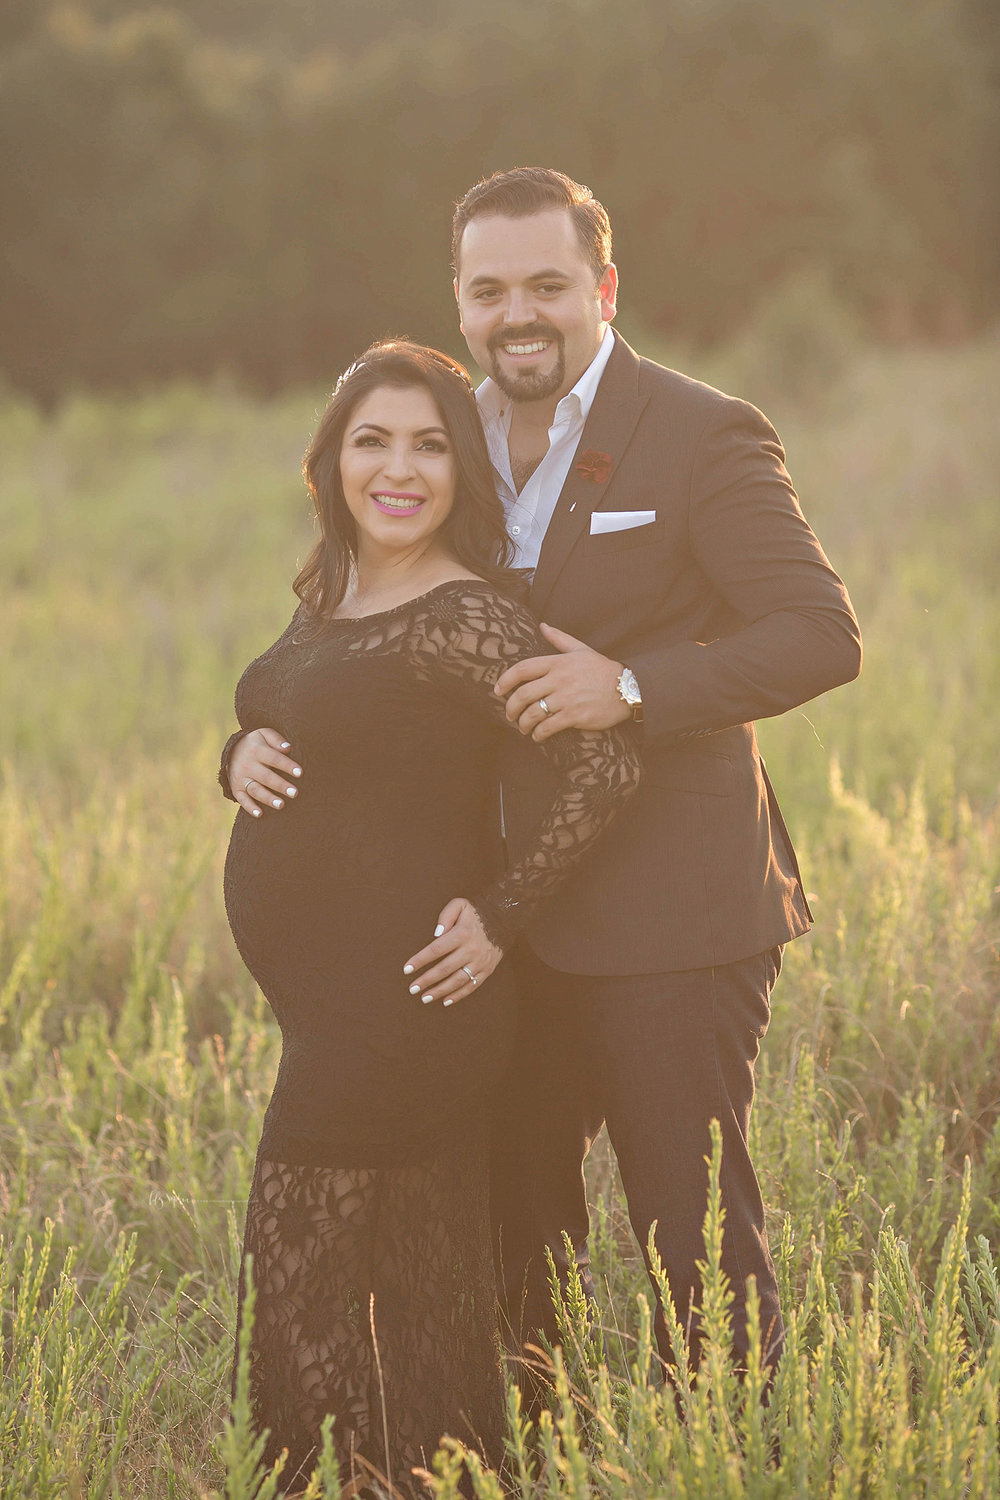 Image of a pregnant Latino couple, standing in a field at sunset, smiling.